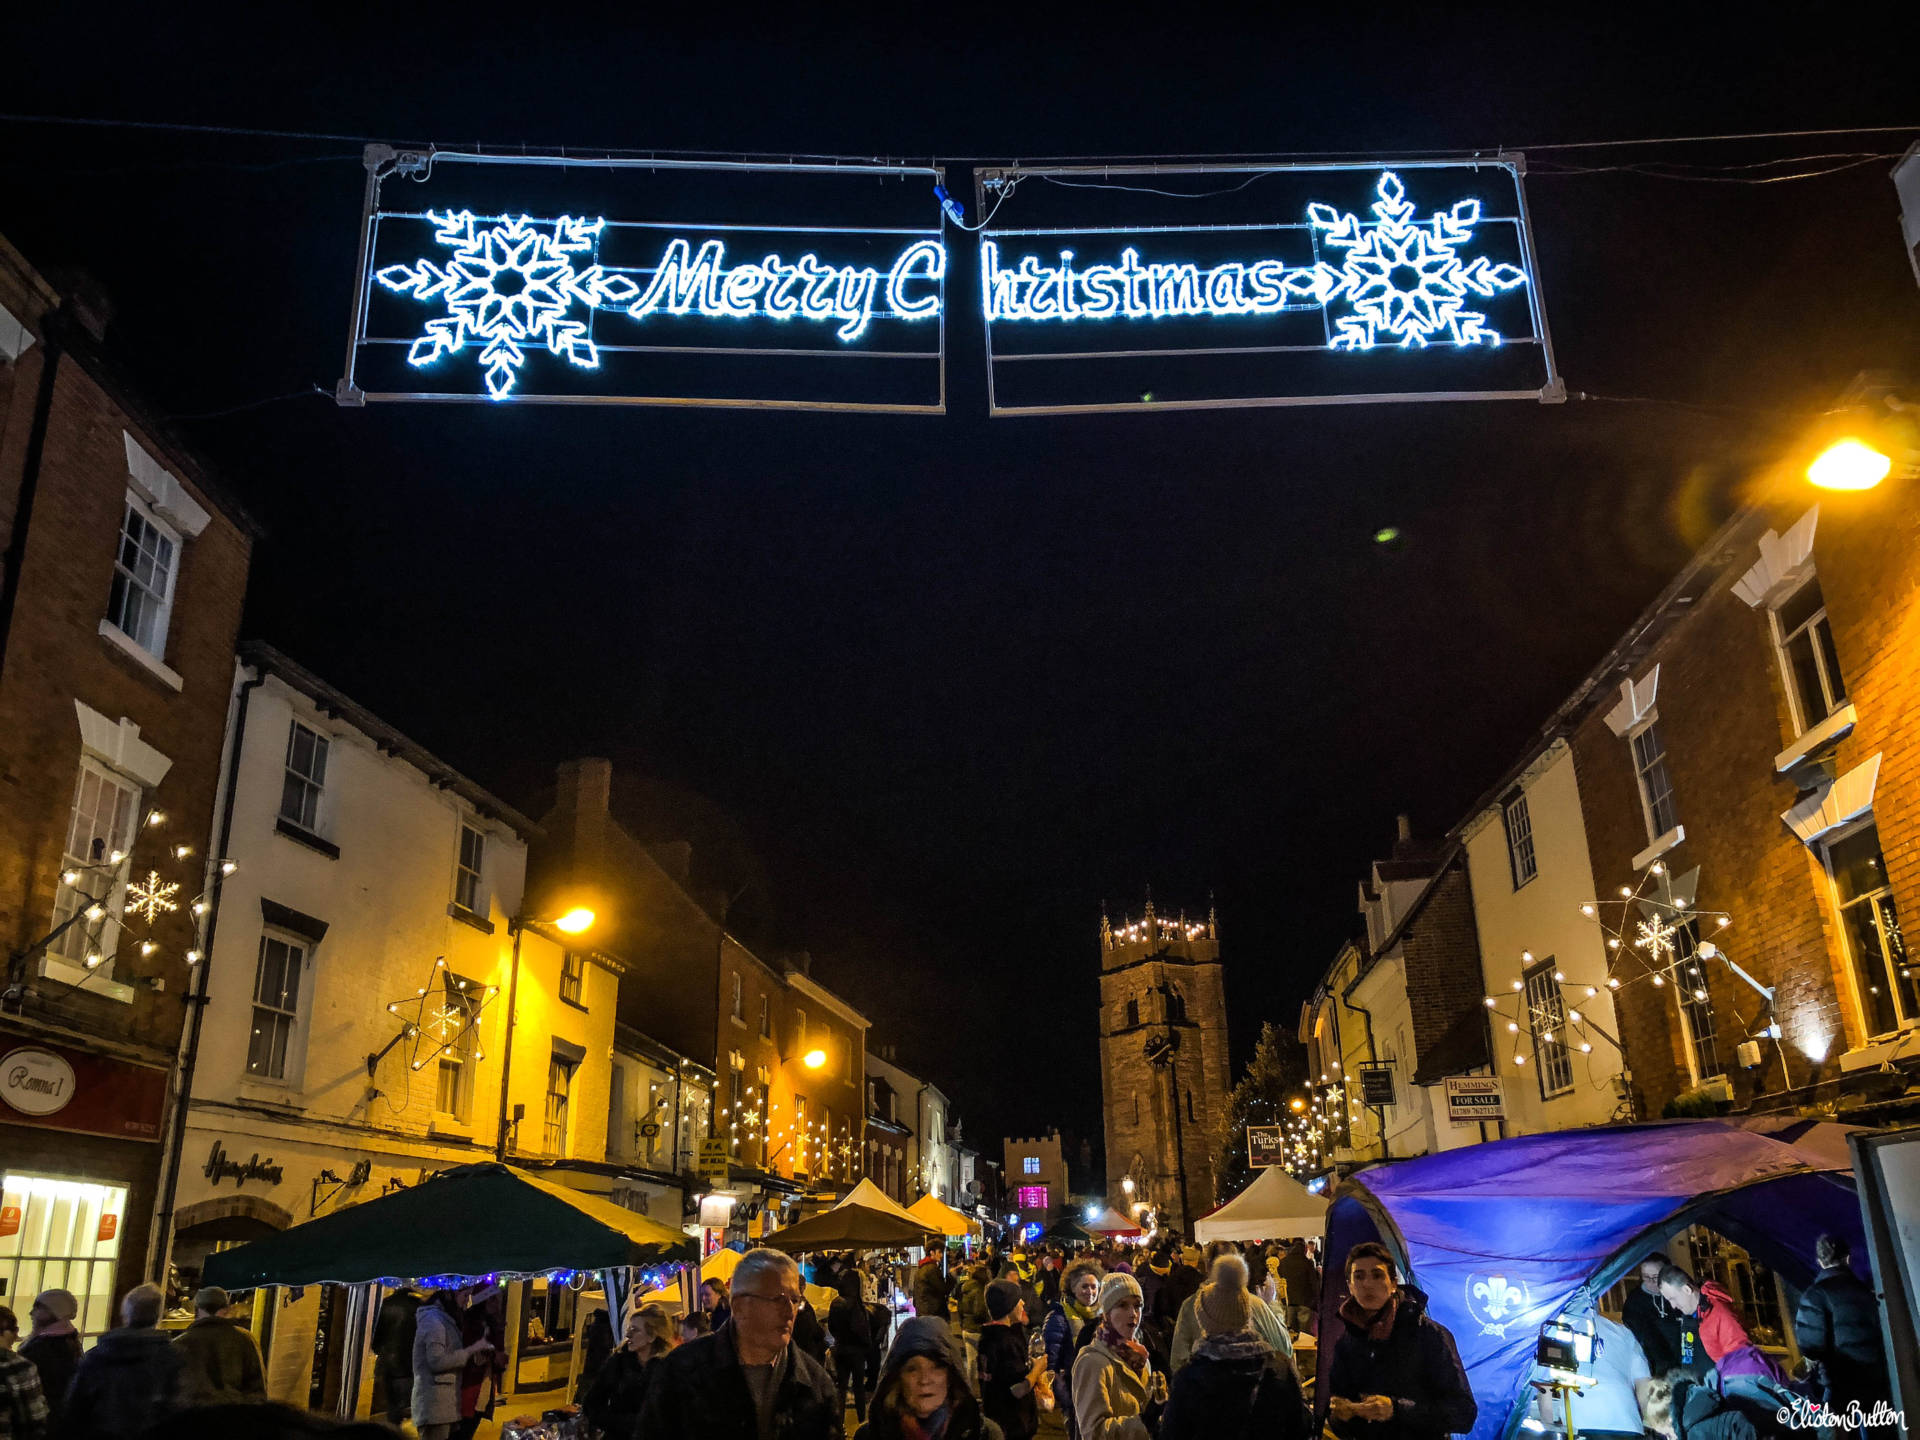 Merry Christmas Neon Sign and St Nick's Night Christmas Market in Alcester, Warwickshire - For the Love of…Christmas at www.elistonbutton.com - Eliston Button - That Crafty Kid – Art, Design, Craft & Adventure.